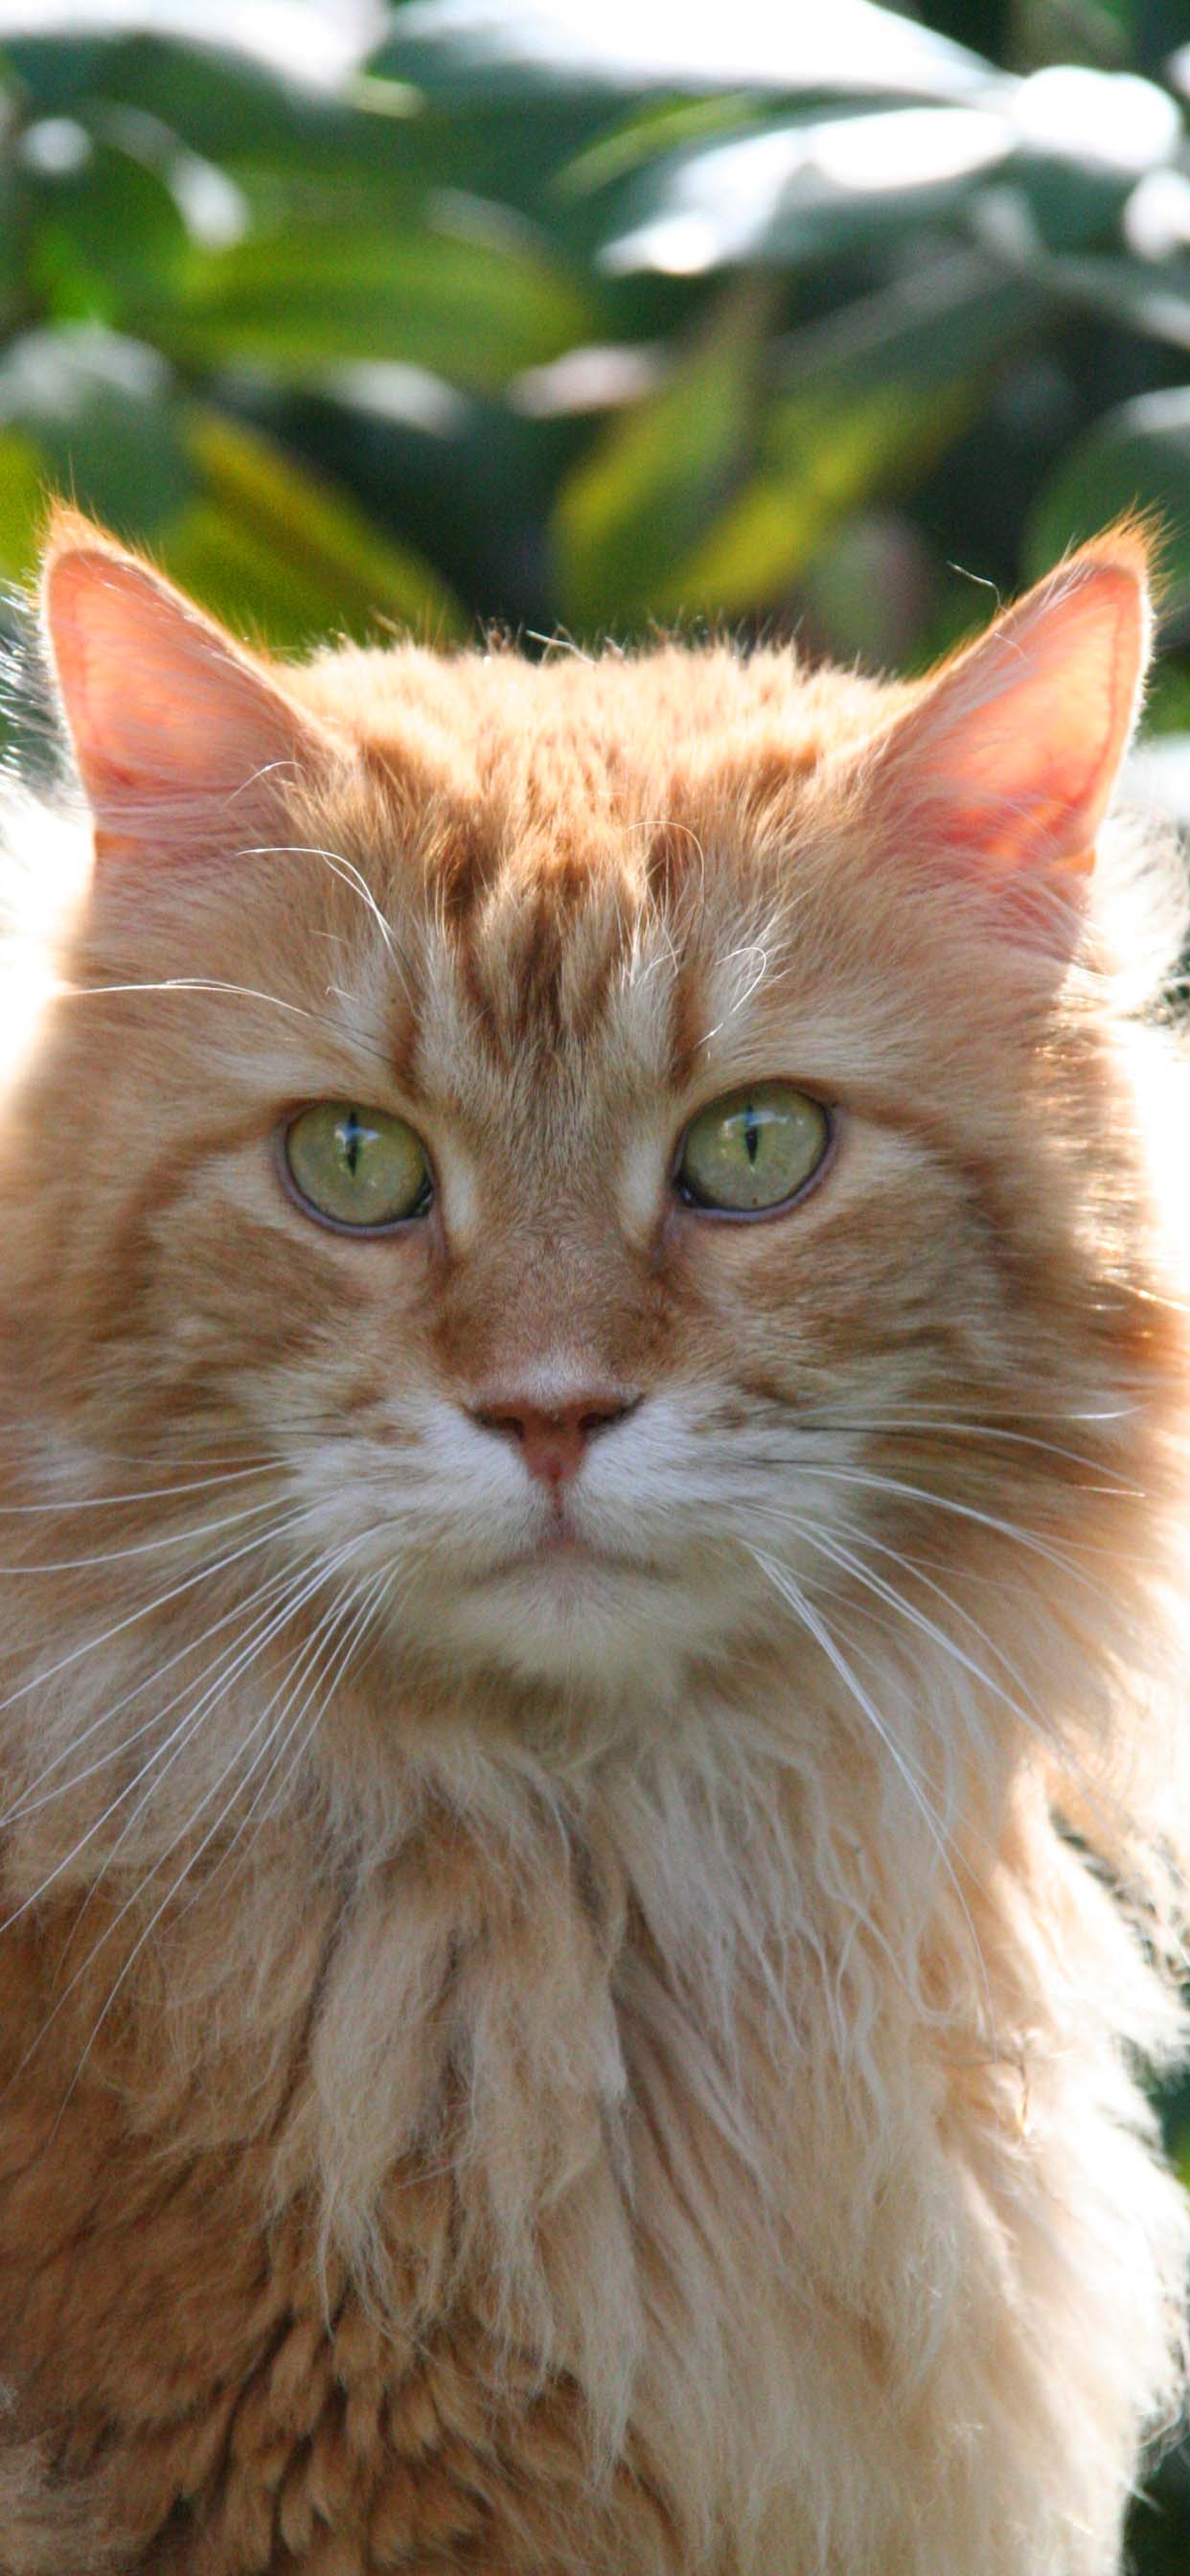 Cute Cat Wallpaper For iPhone XR - Orange Maine Coon Cat